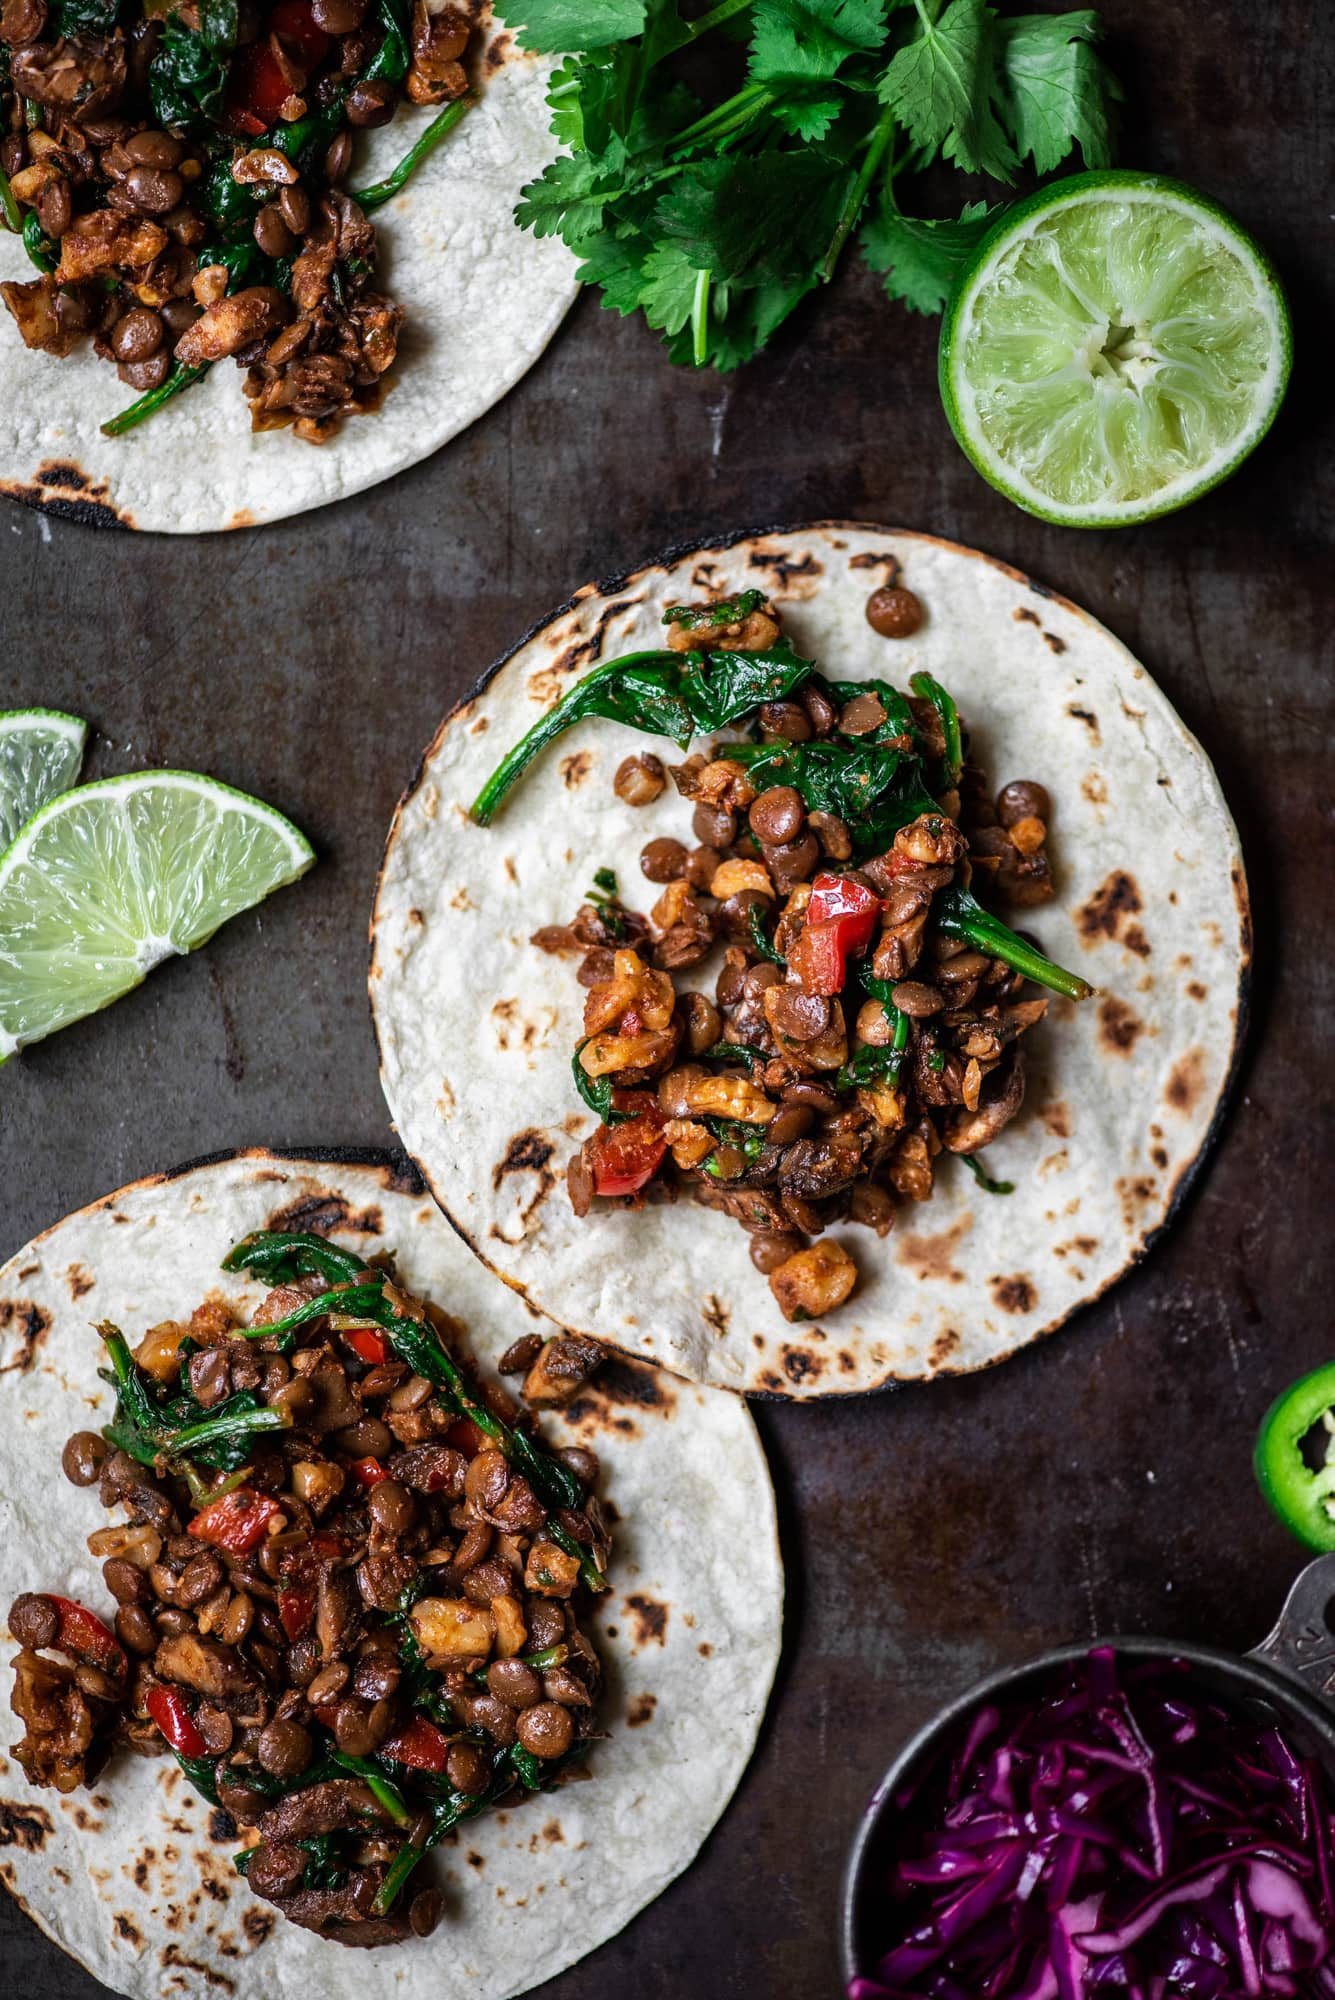 Overhead view of vegan lentil walnut tacos on tortillas